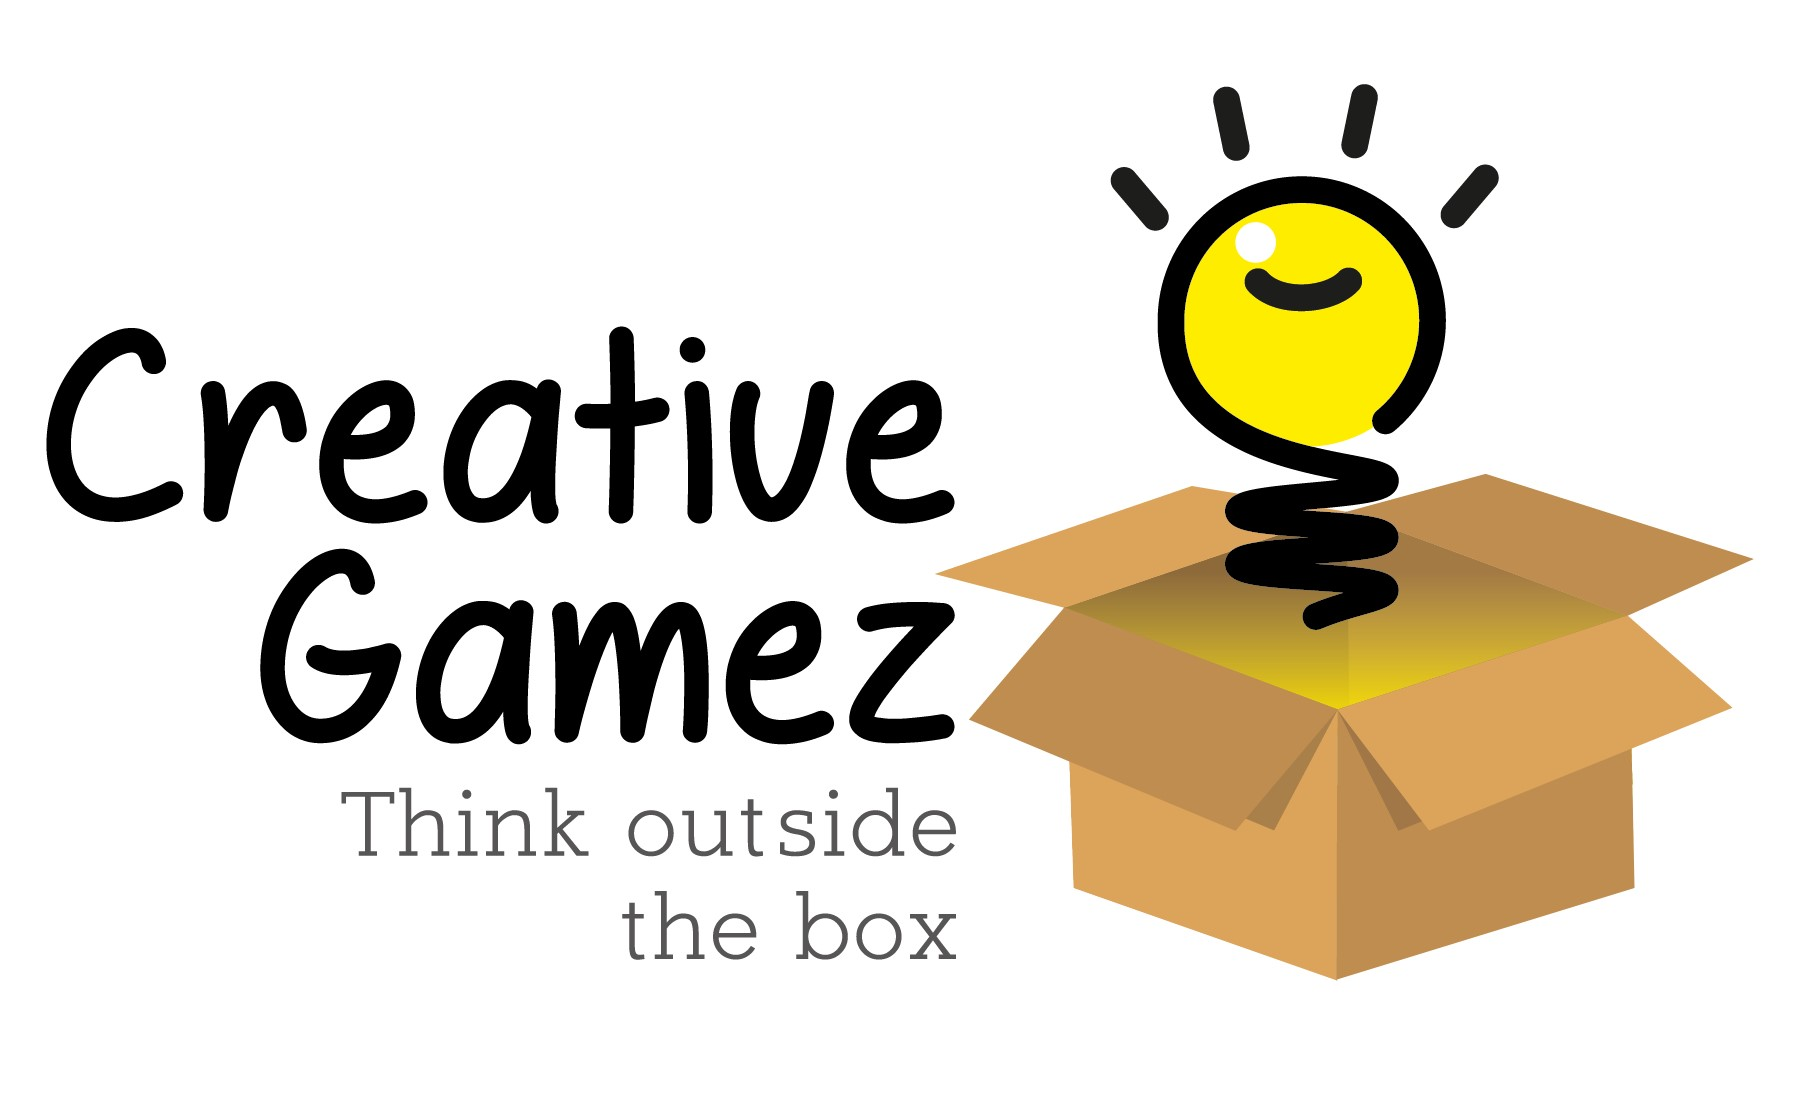 http://houghandbollard.co.uk/wp-content/uploads/2018/11/Logo-Creative-Gamez.jpg